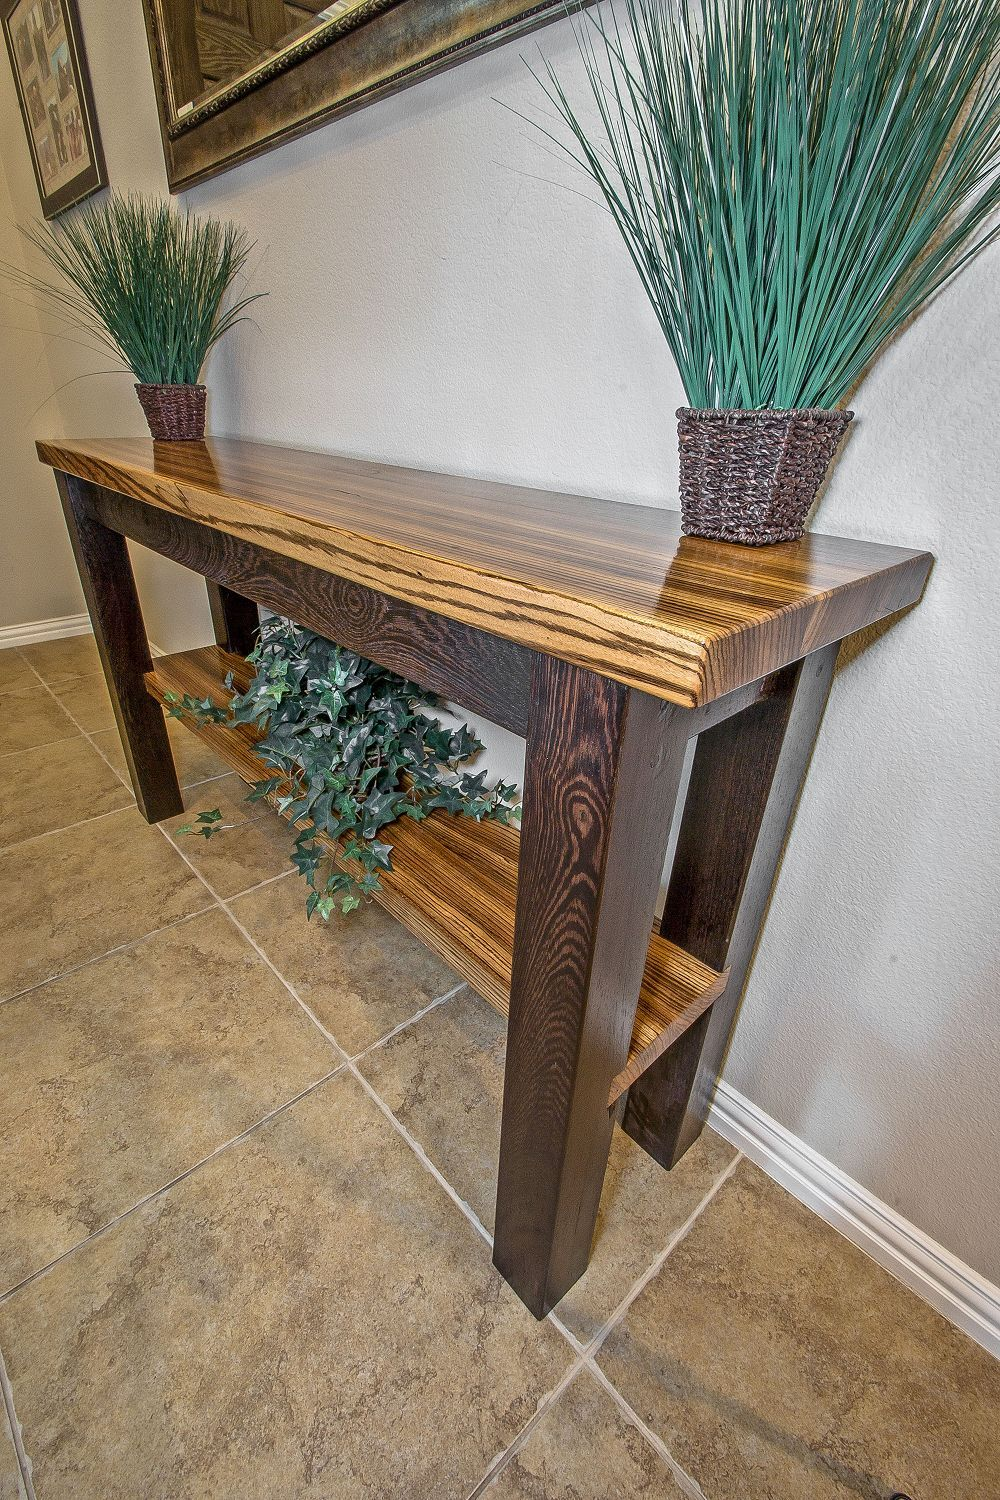 This beautiful zebrawood accent table is completely built by hand